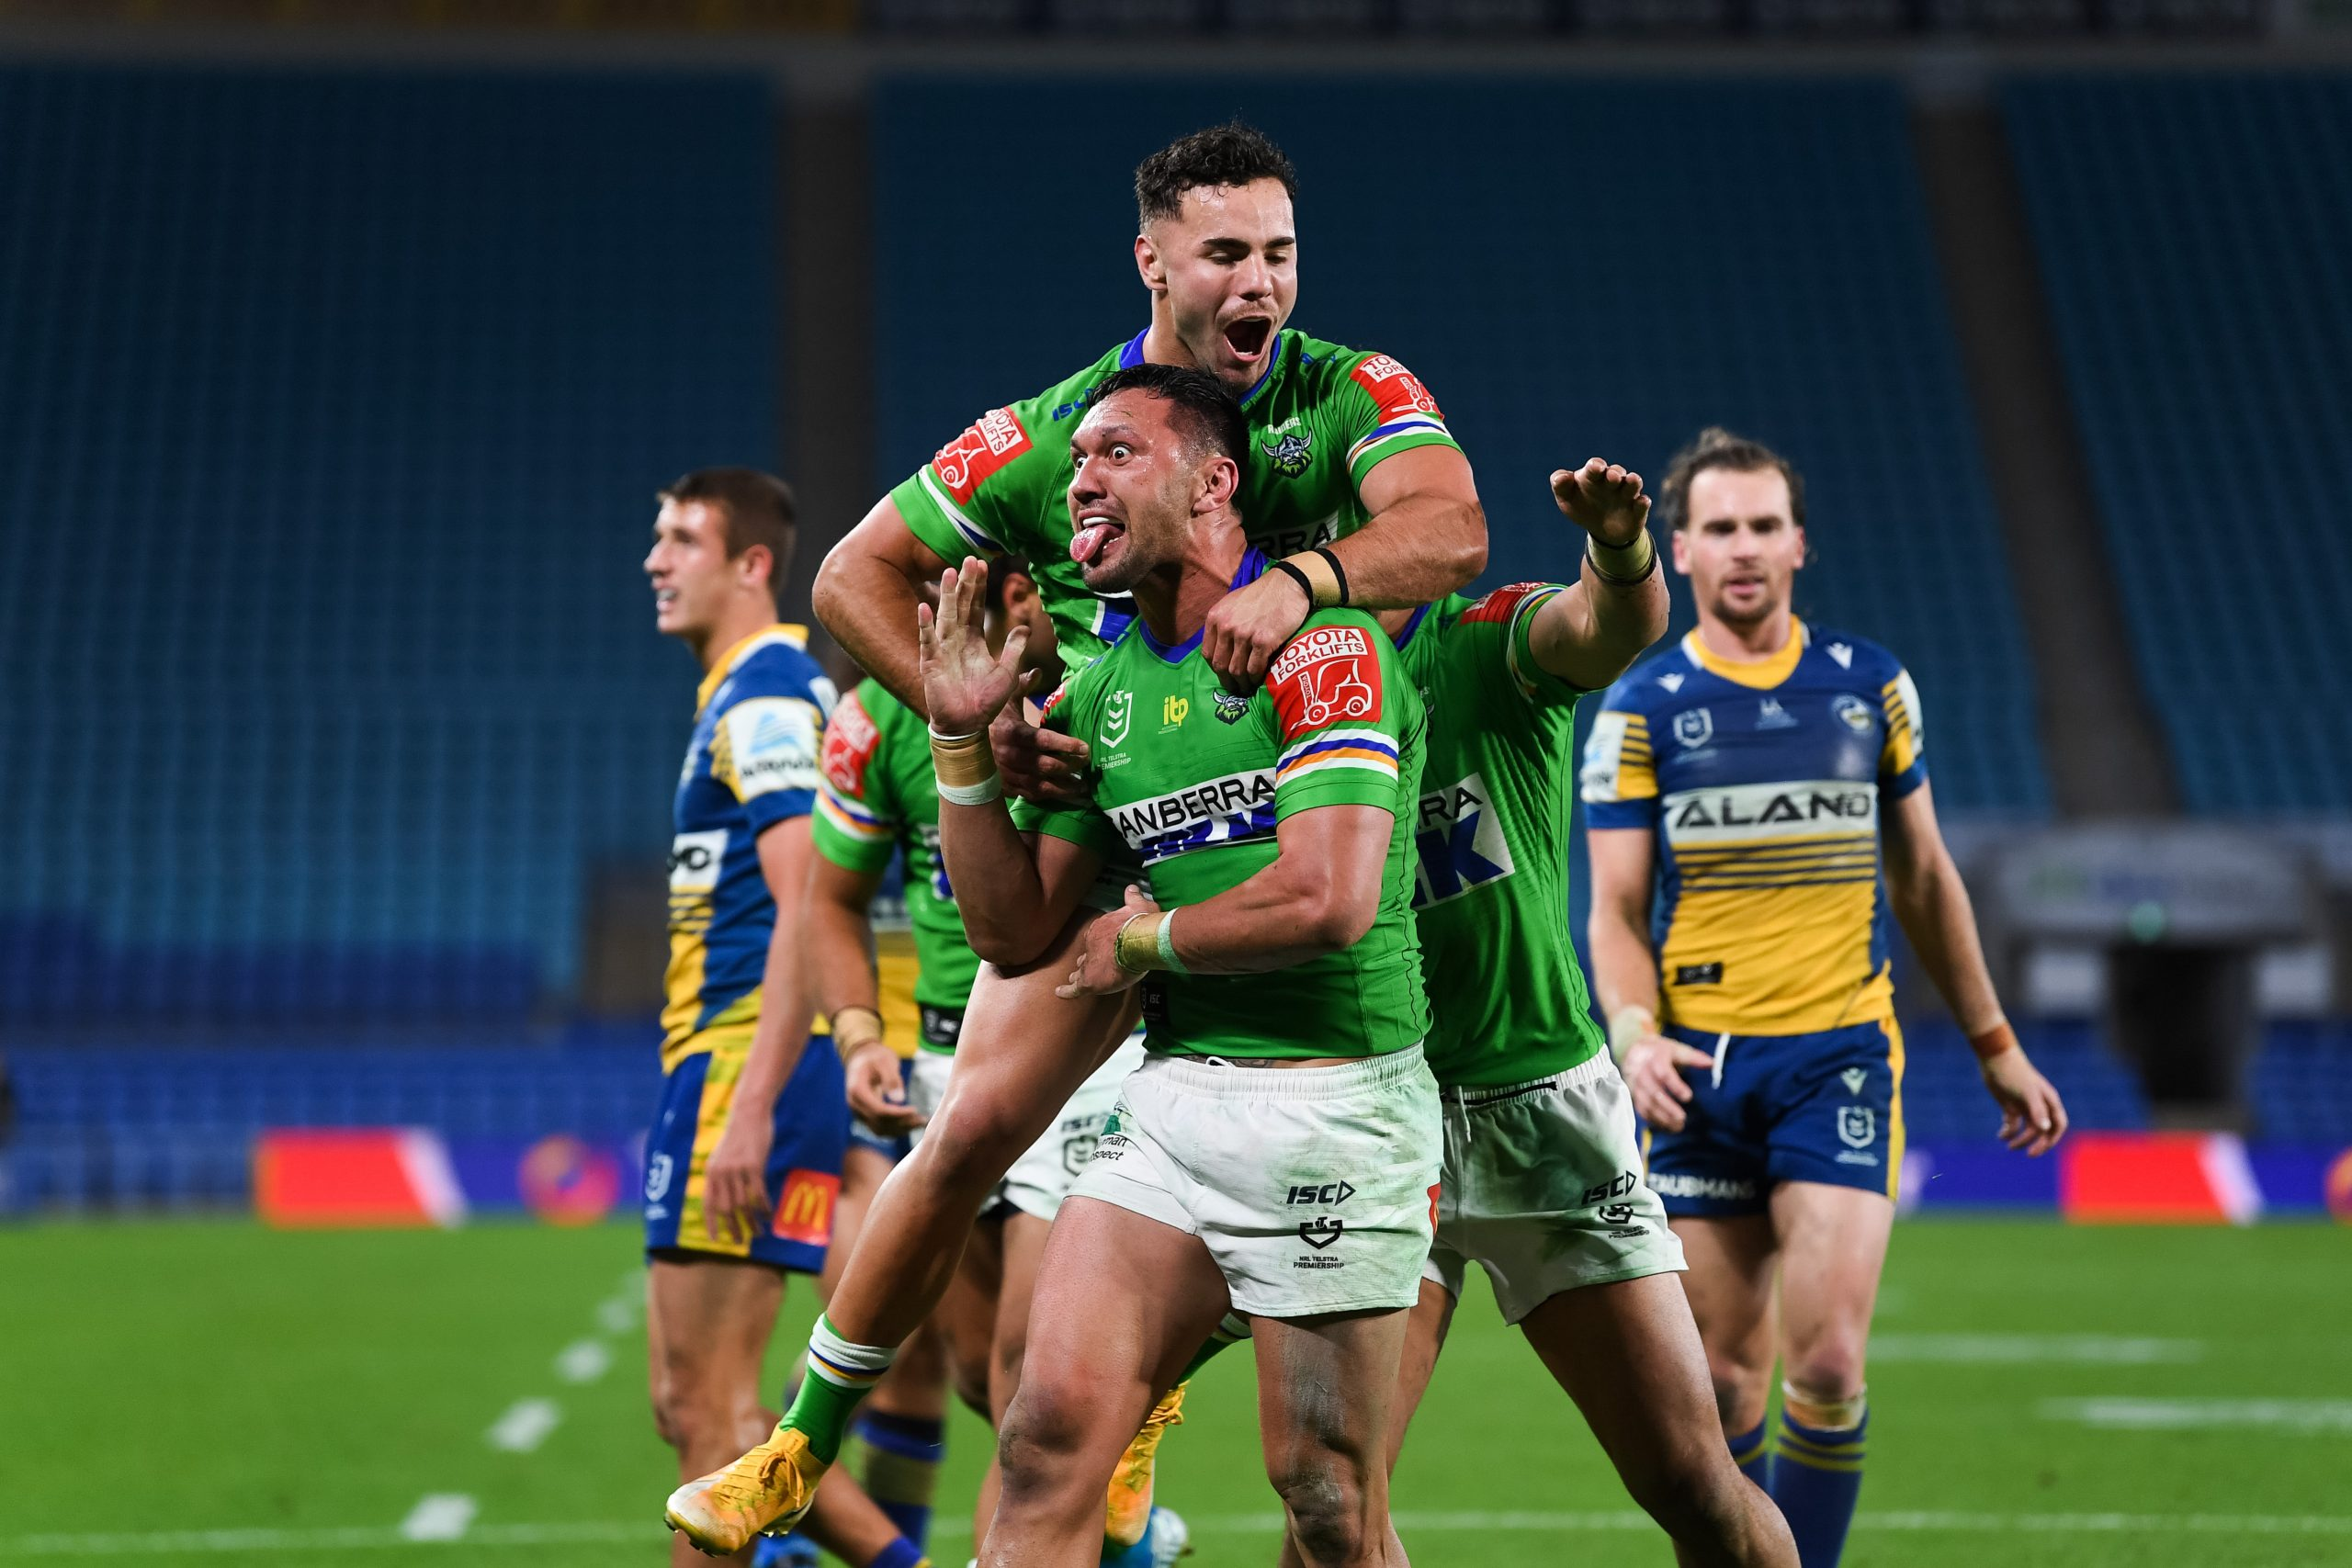 Finals intensity on show as Raiders stun Eels in gritty thriller